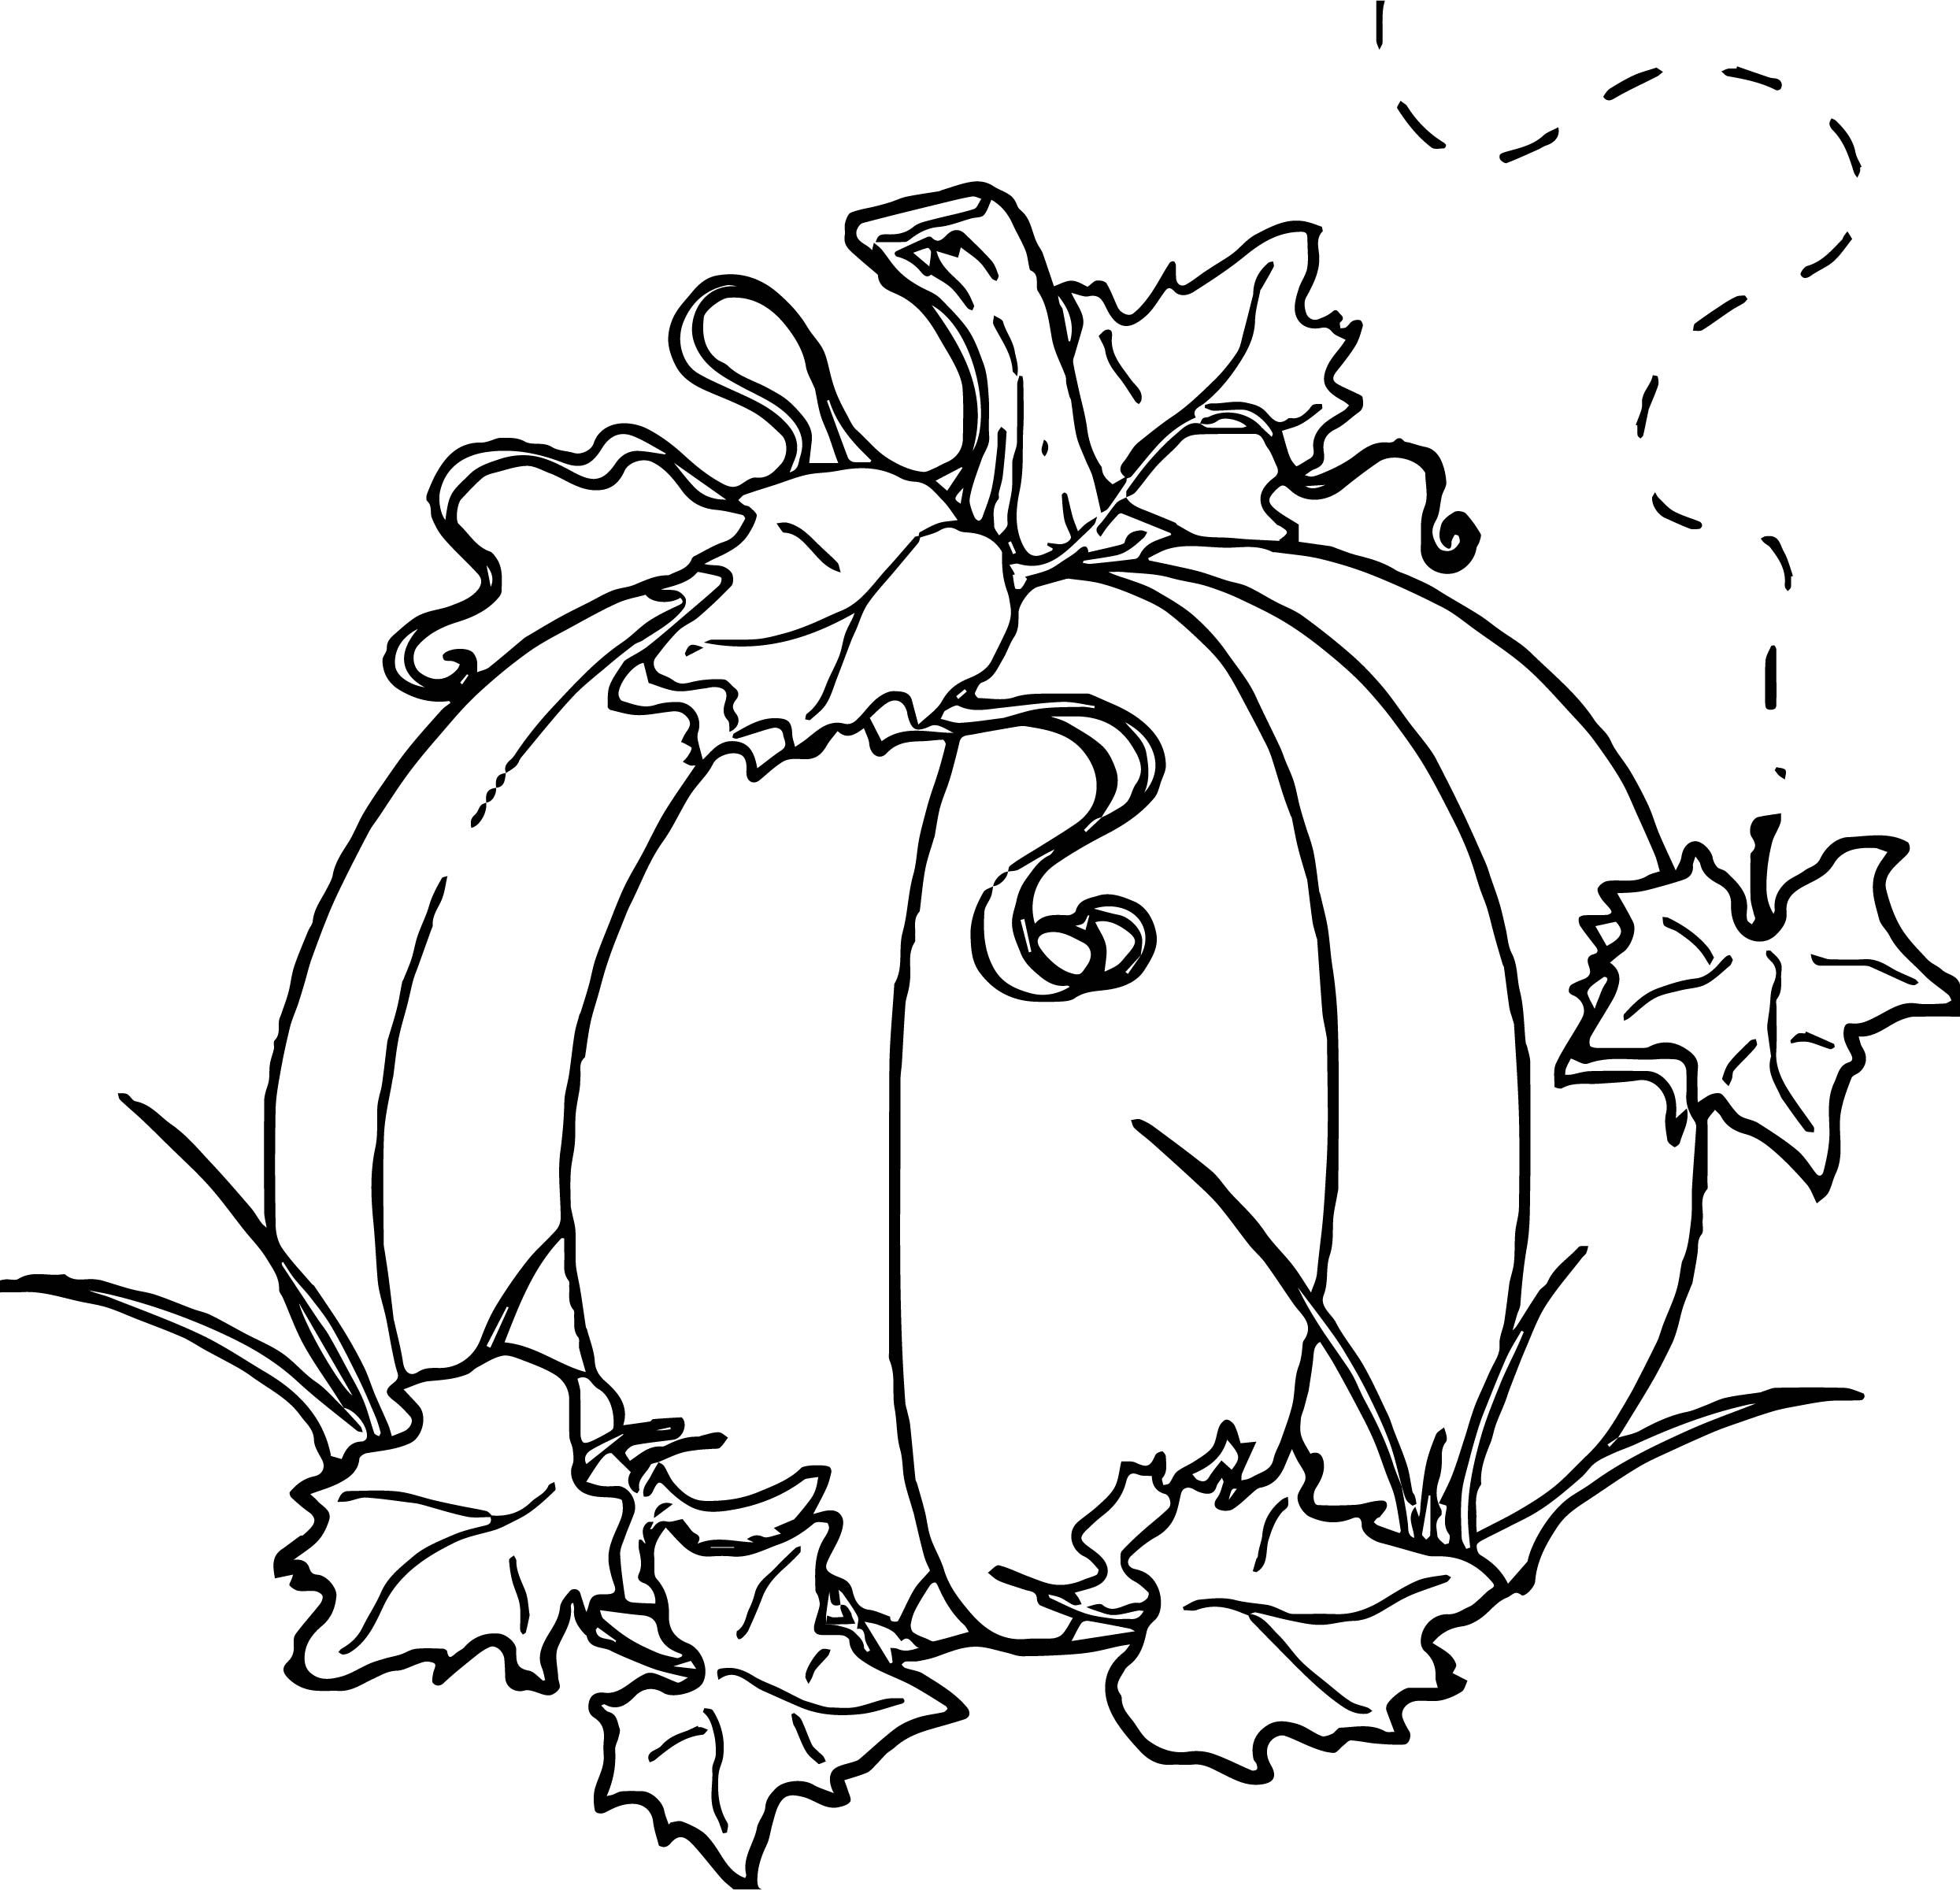 Awesome Free Autumn Pumpkin Coloring Page | Colored Pencil